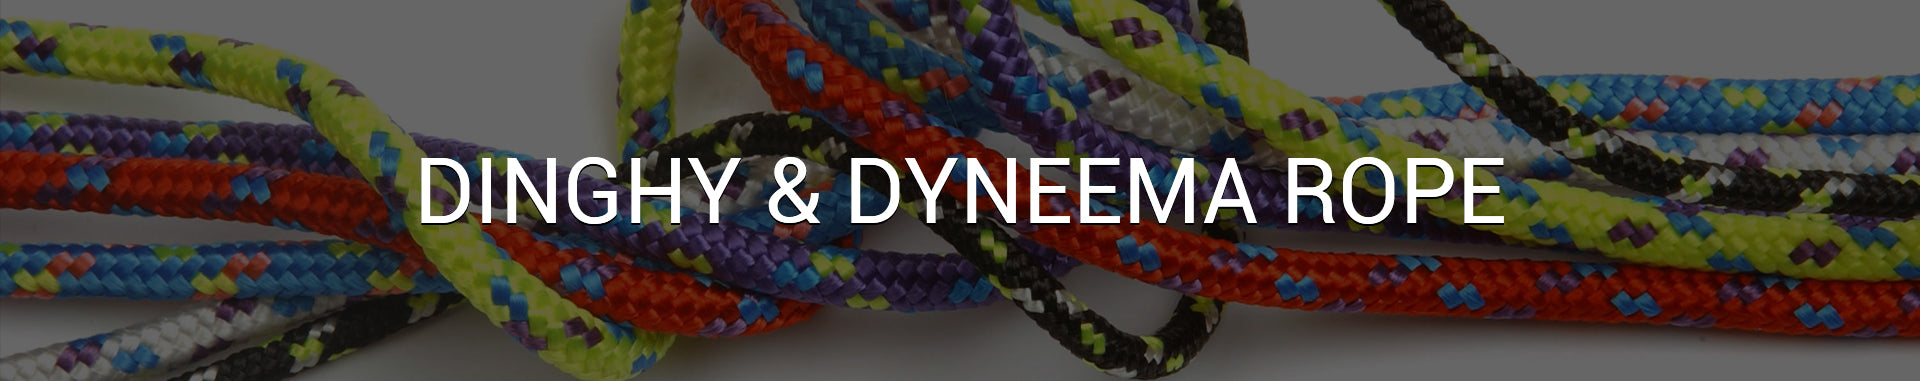 Dinghy & Dyneema Rope